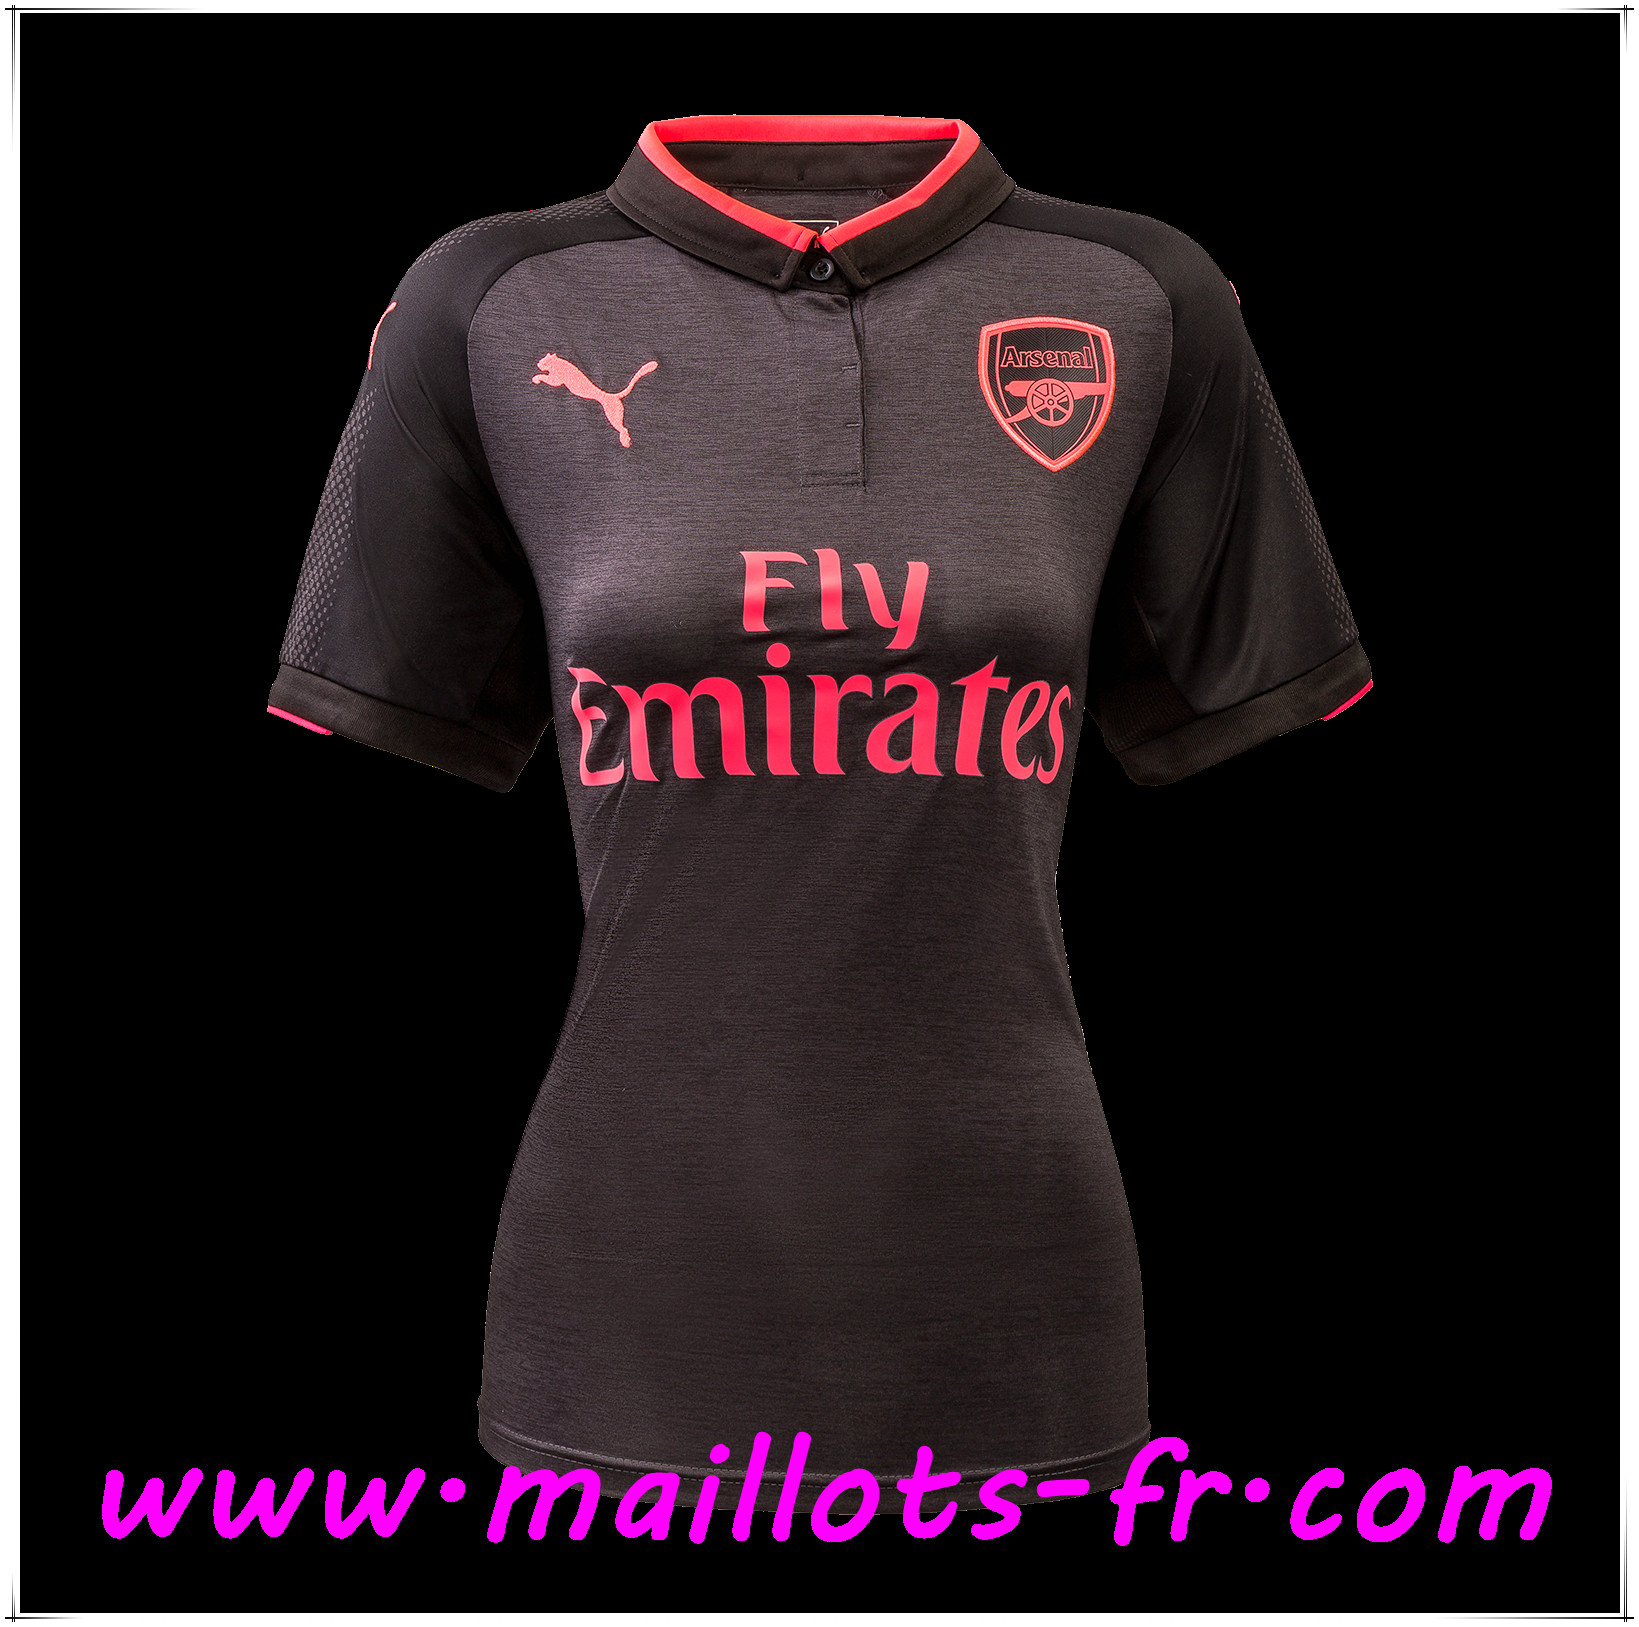 maillots-fr Maillot de Foot Arsenal Femme Third 2017 2018